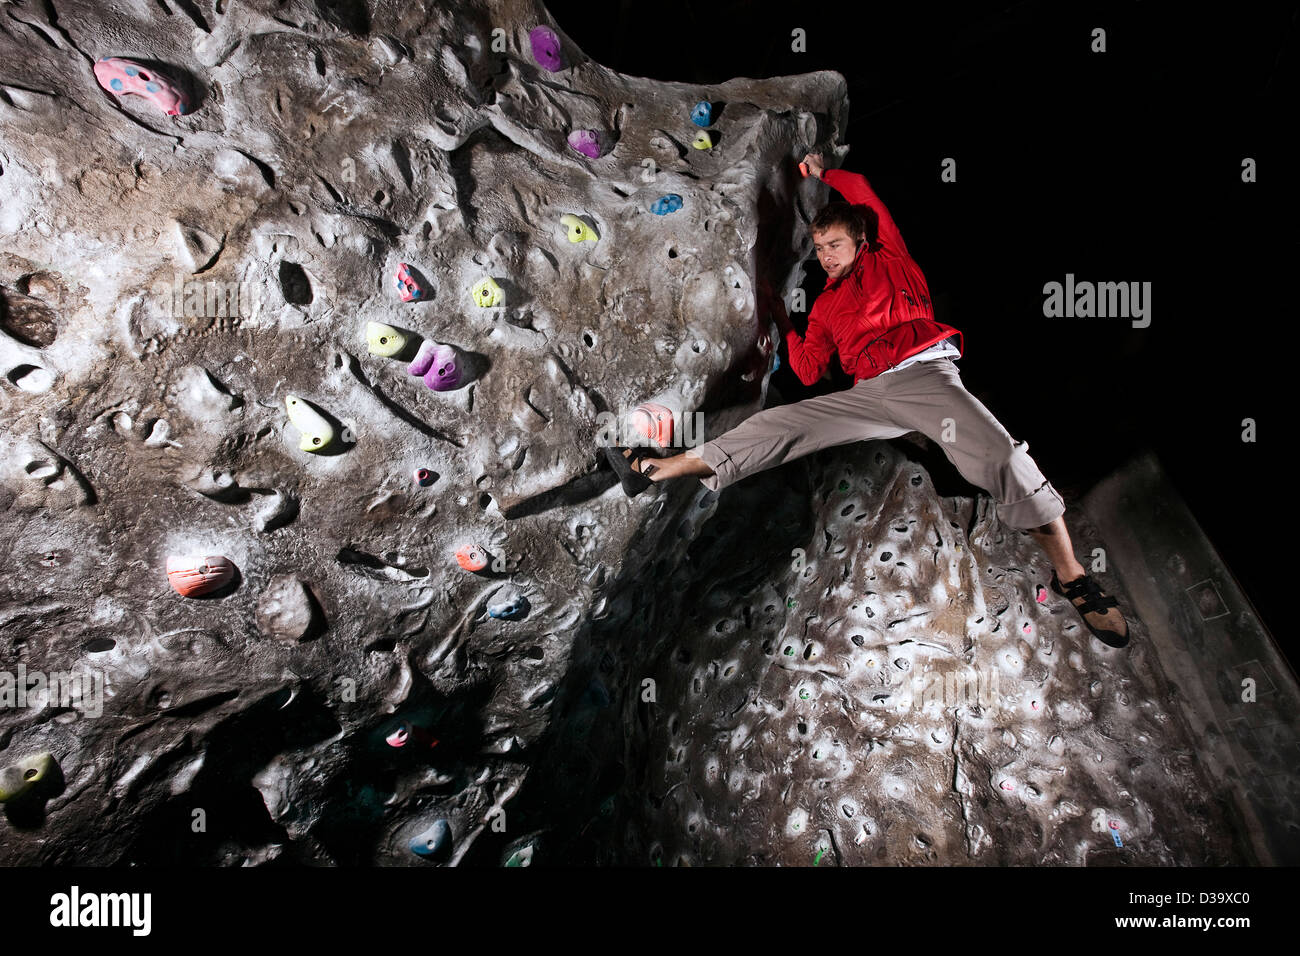 Rock climber on climbing wall, low angle - Stock Image